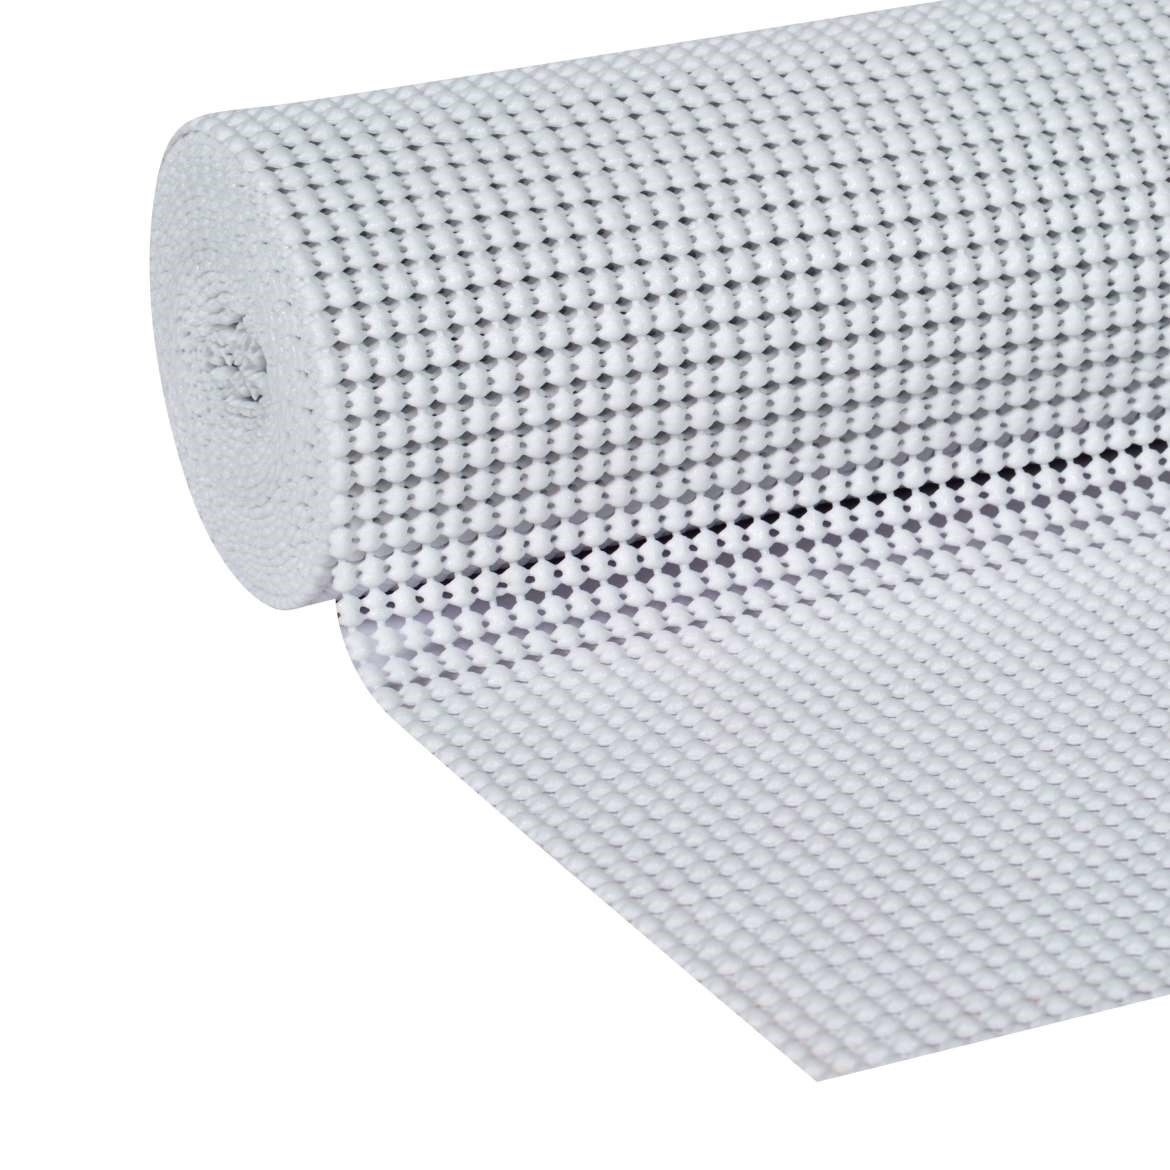 Duck Select Grip 12 In. x 10 Ft. Shelf Liner, White